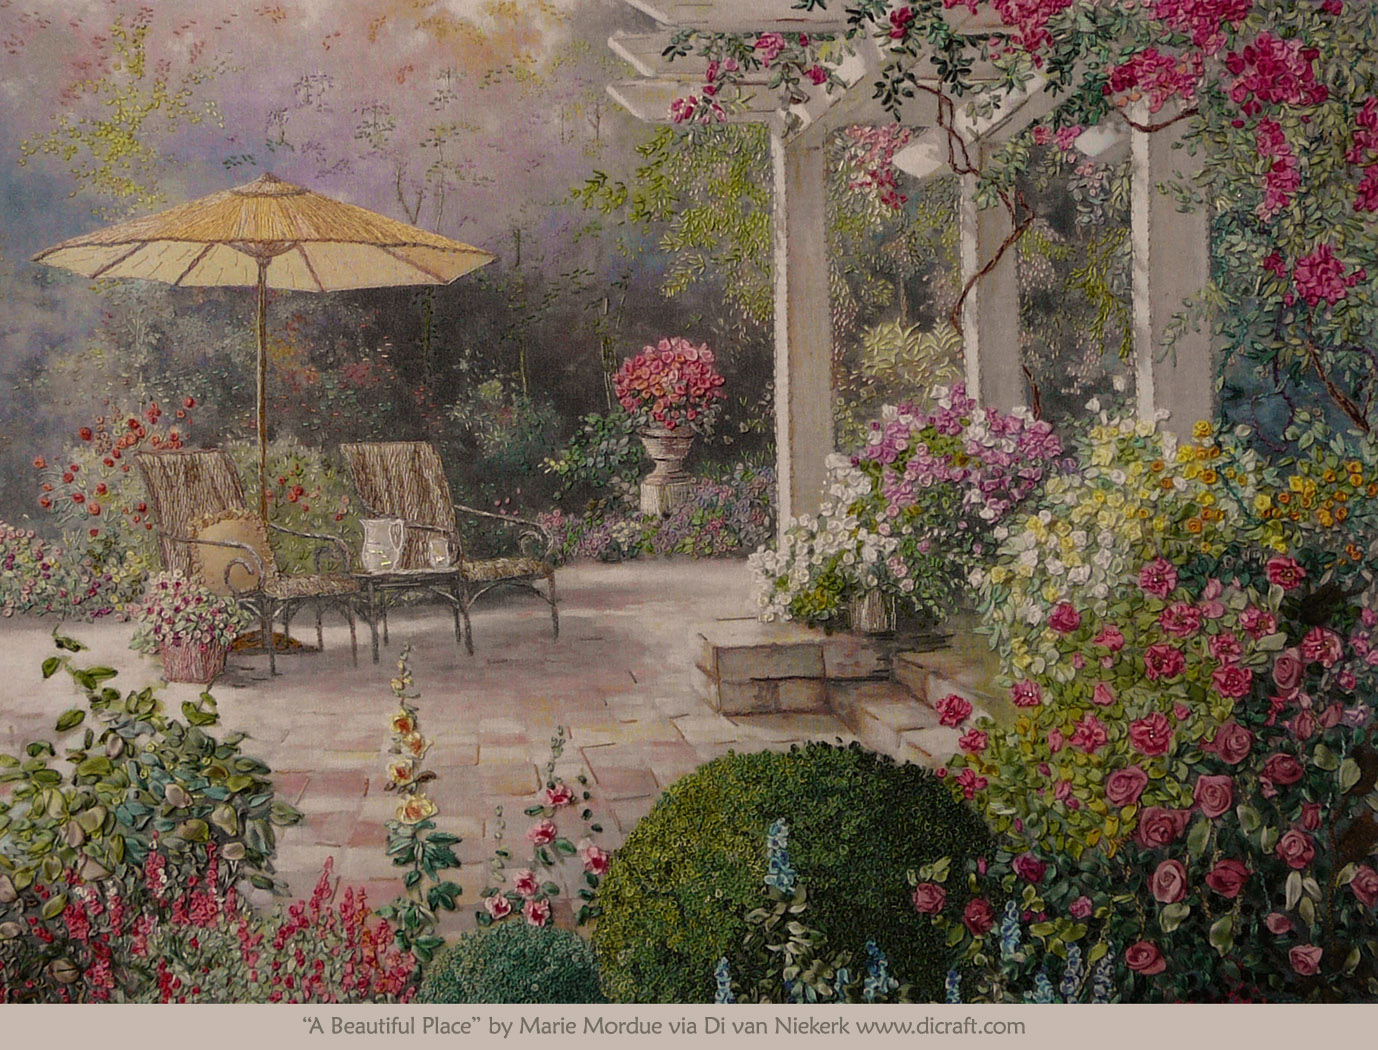 A Beautiful Place by Marie Mordue